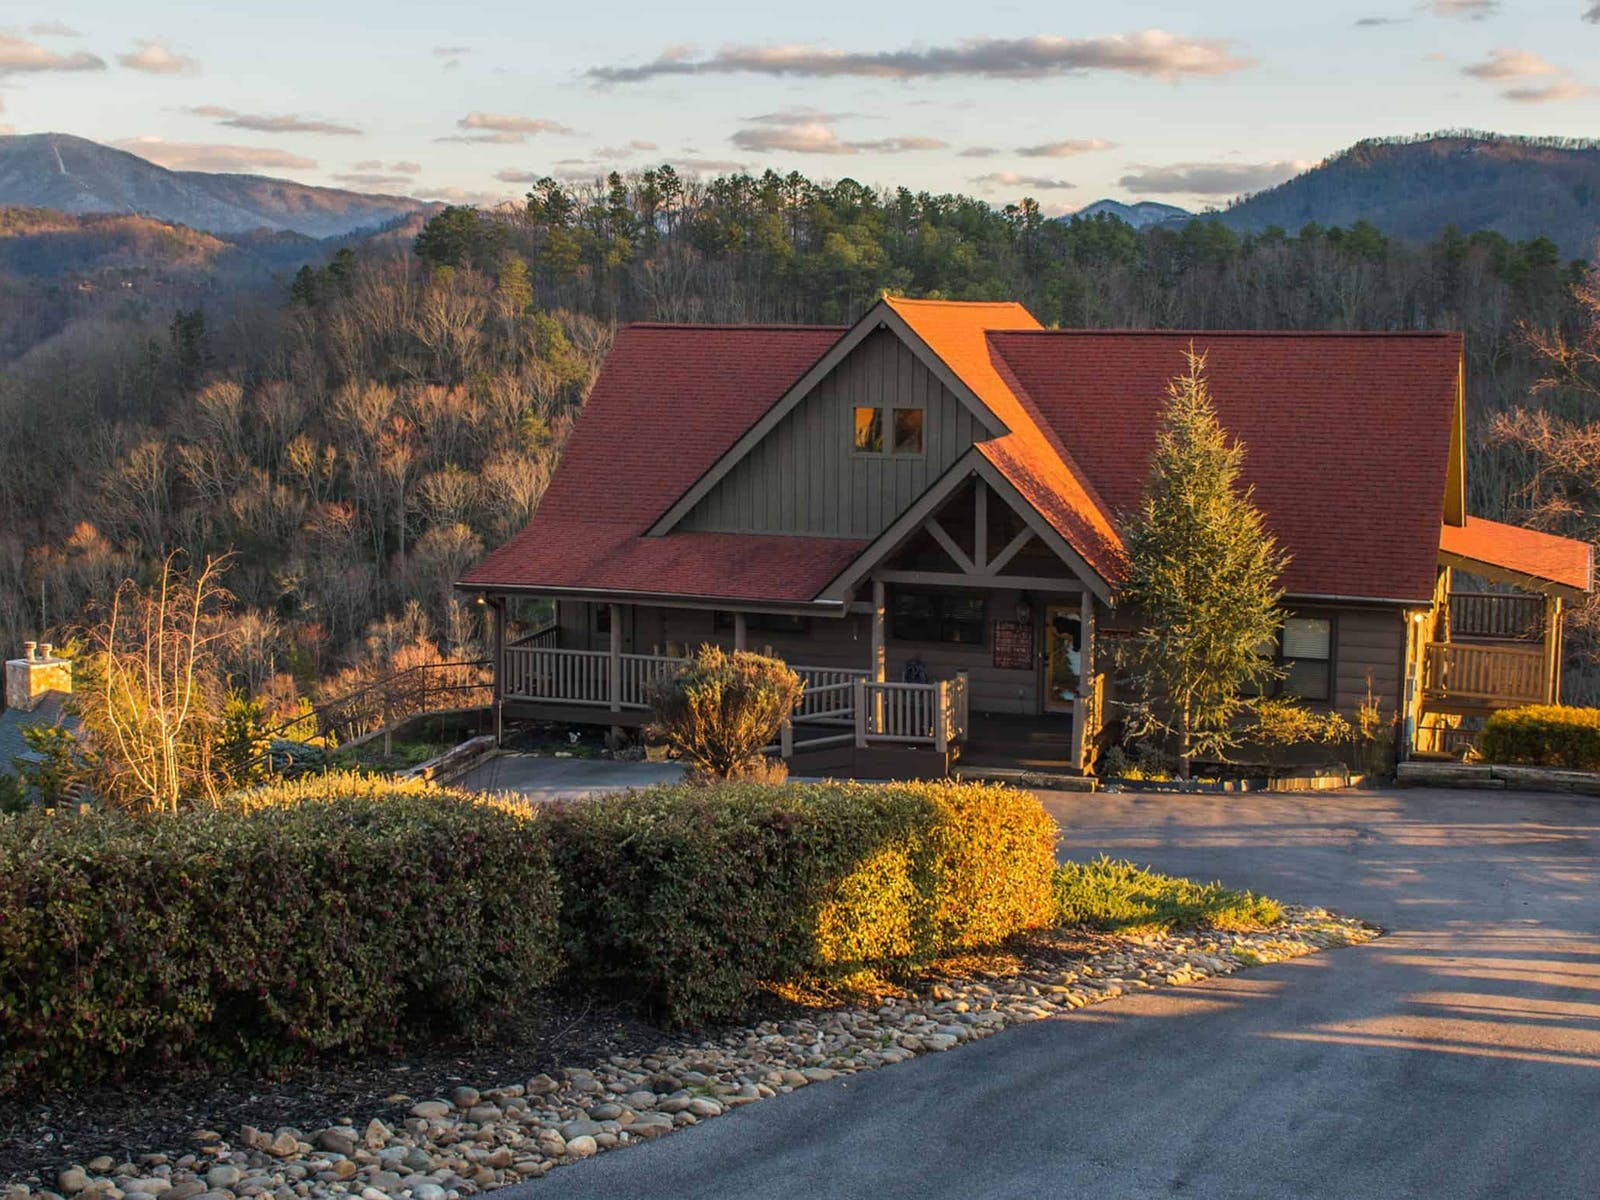 a cabin in the hills of the smoky mountains